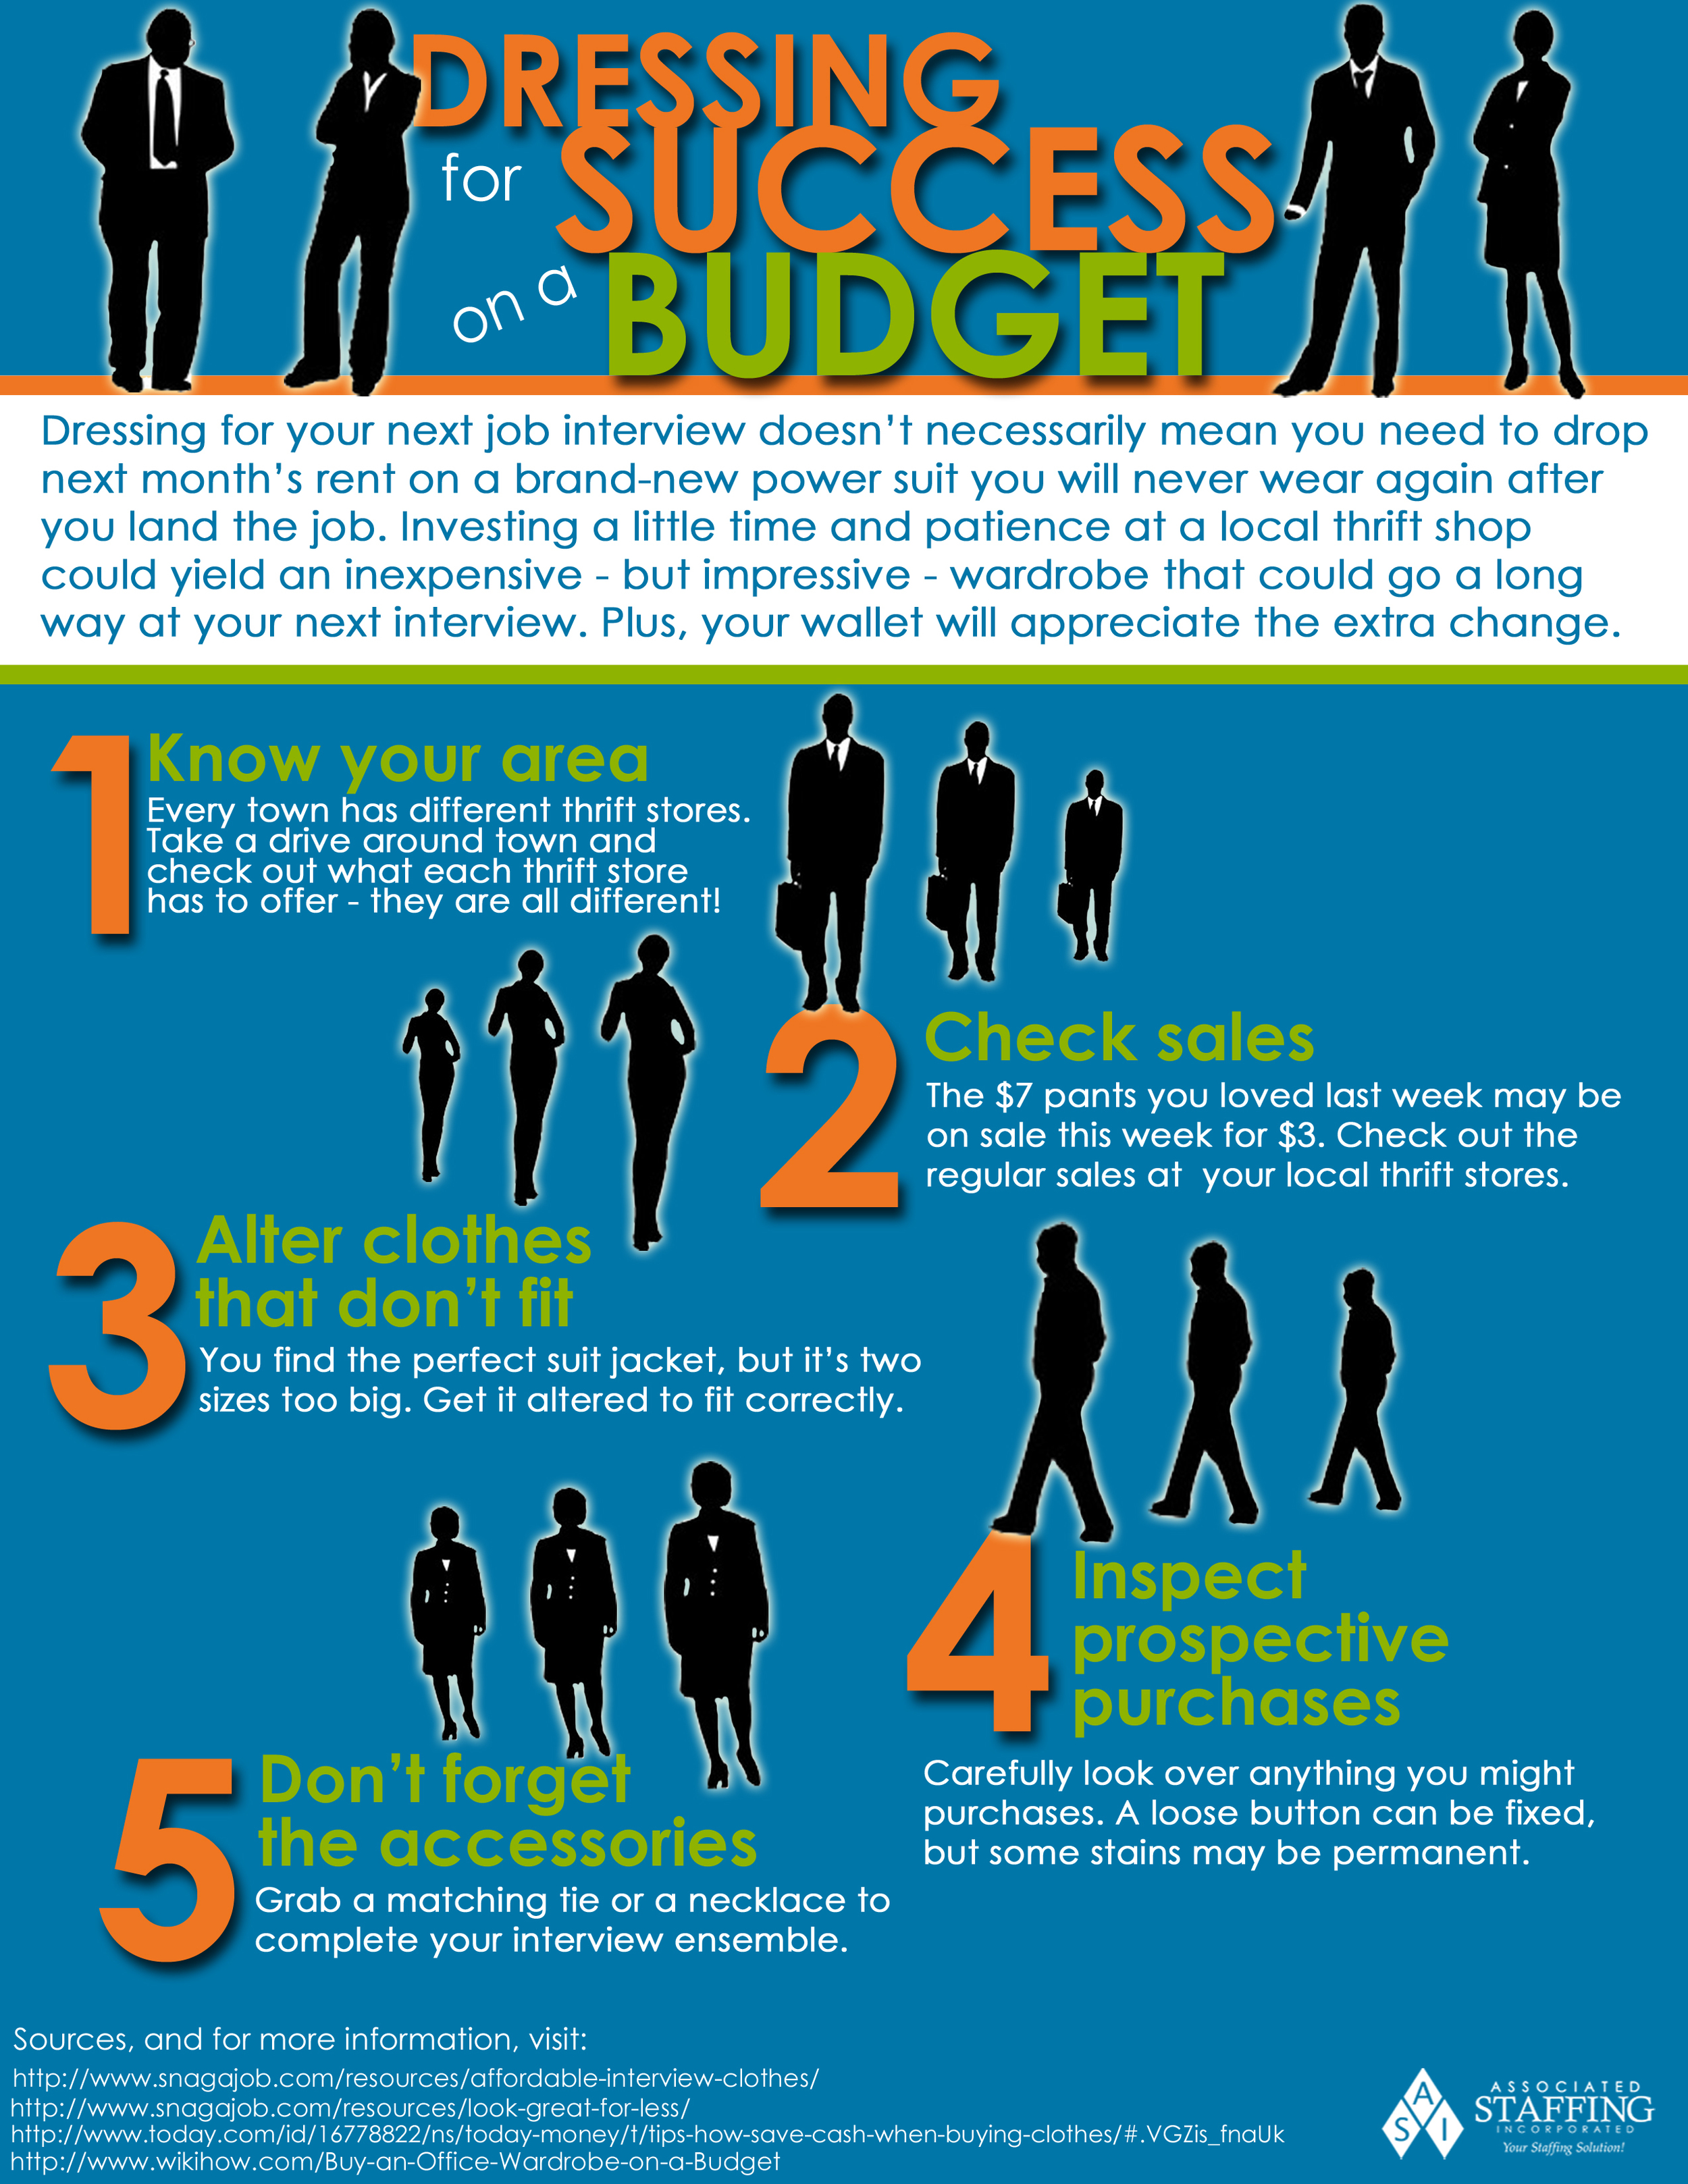 Dressing for Success on a Budget — Associated Staffing, Inc.